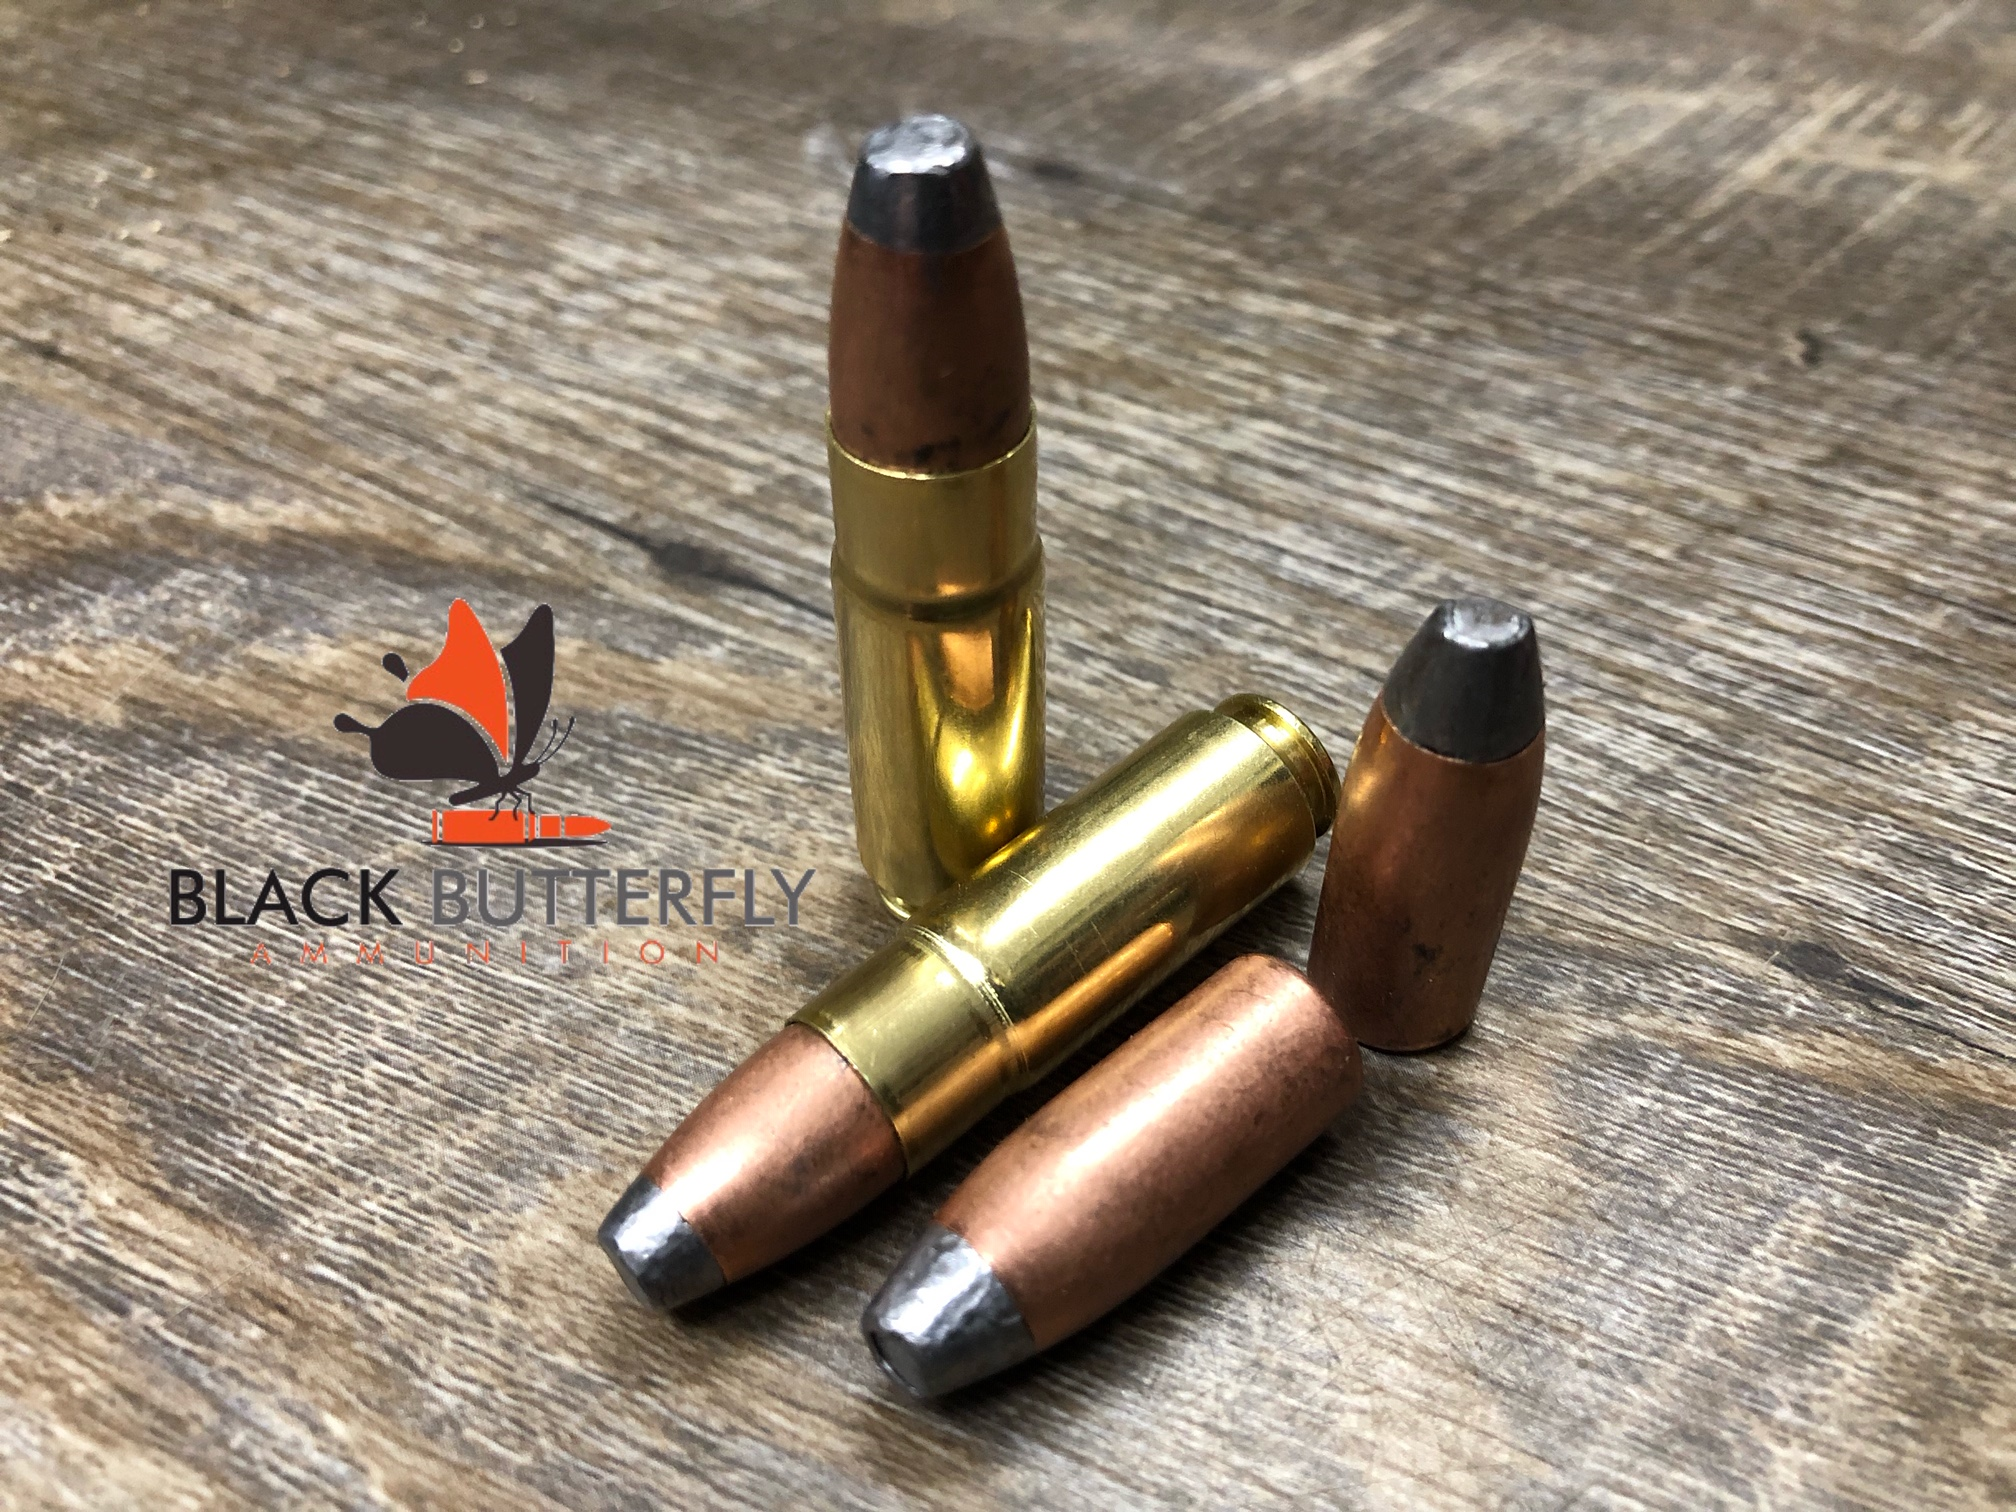 Black Butterfly Ammunition Black Butterfly Ammunition